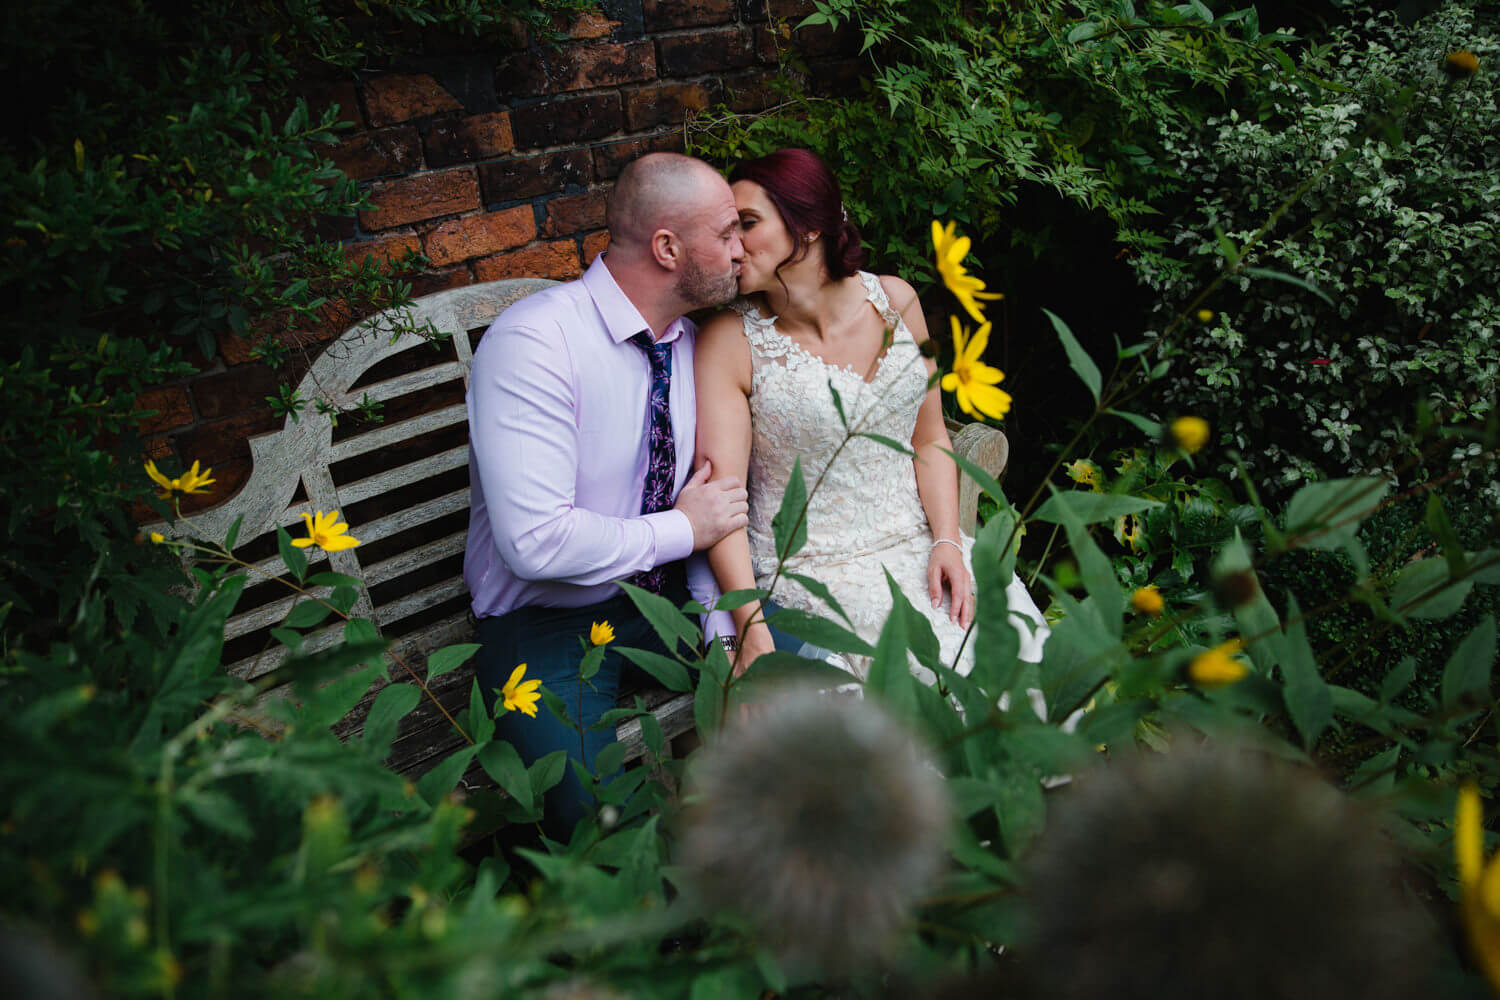 sneaking off with the bride and groom to capture some nice natural relaxed portraits